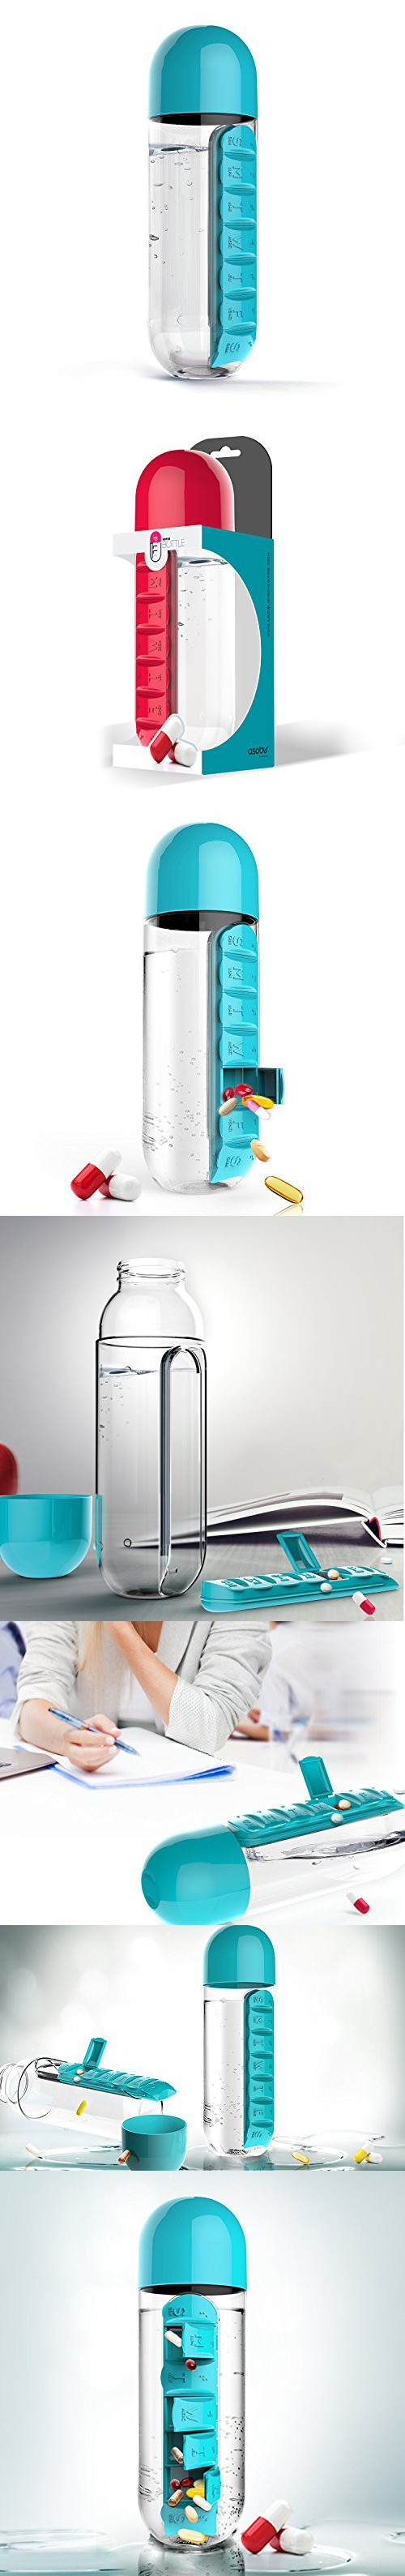 Asobu PB55-9333 Water Bottle with Built-in Daily Pill Box Organizer ...